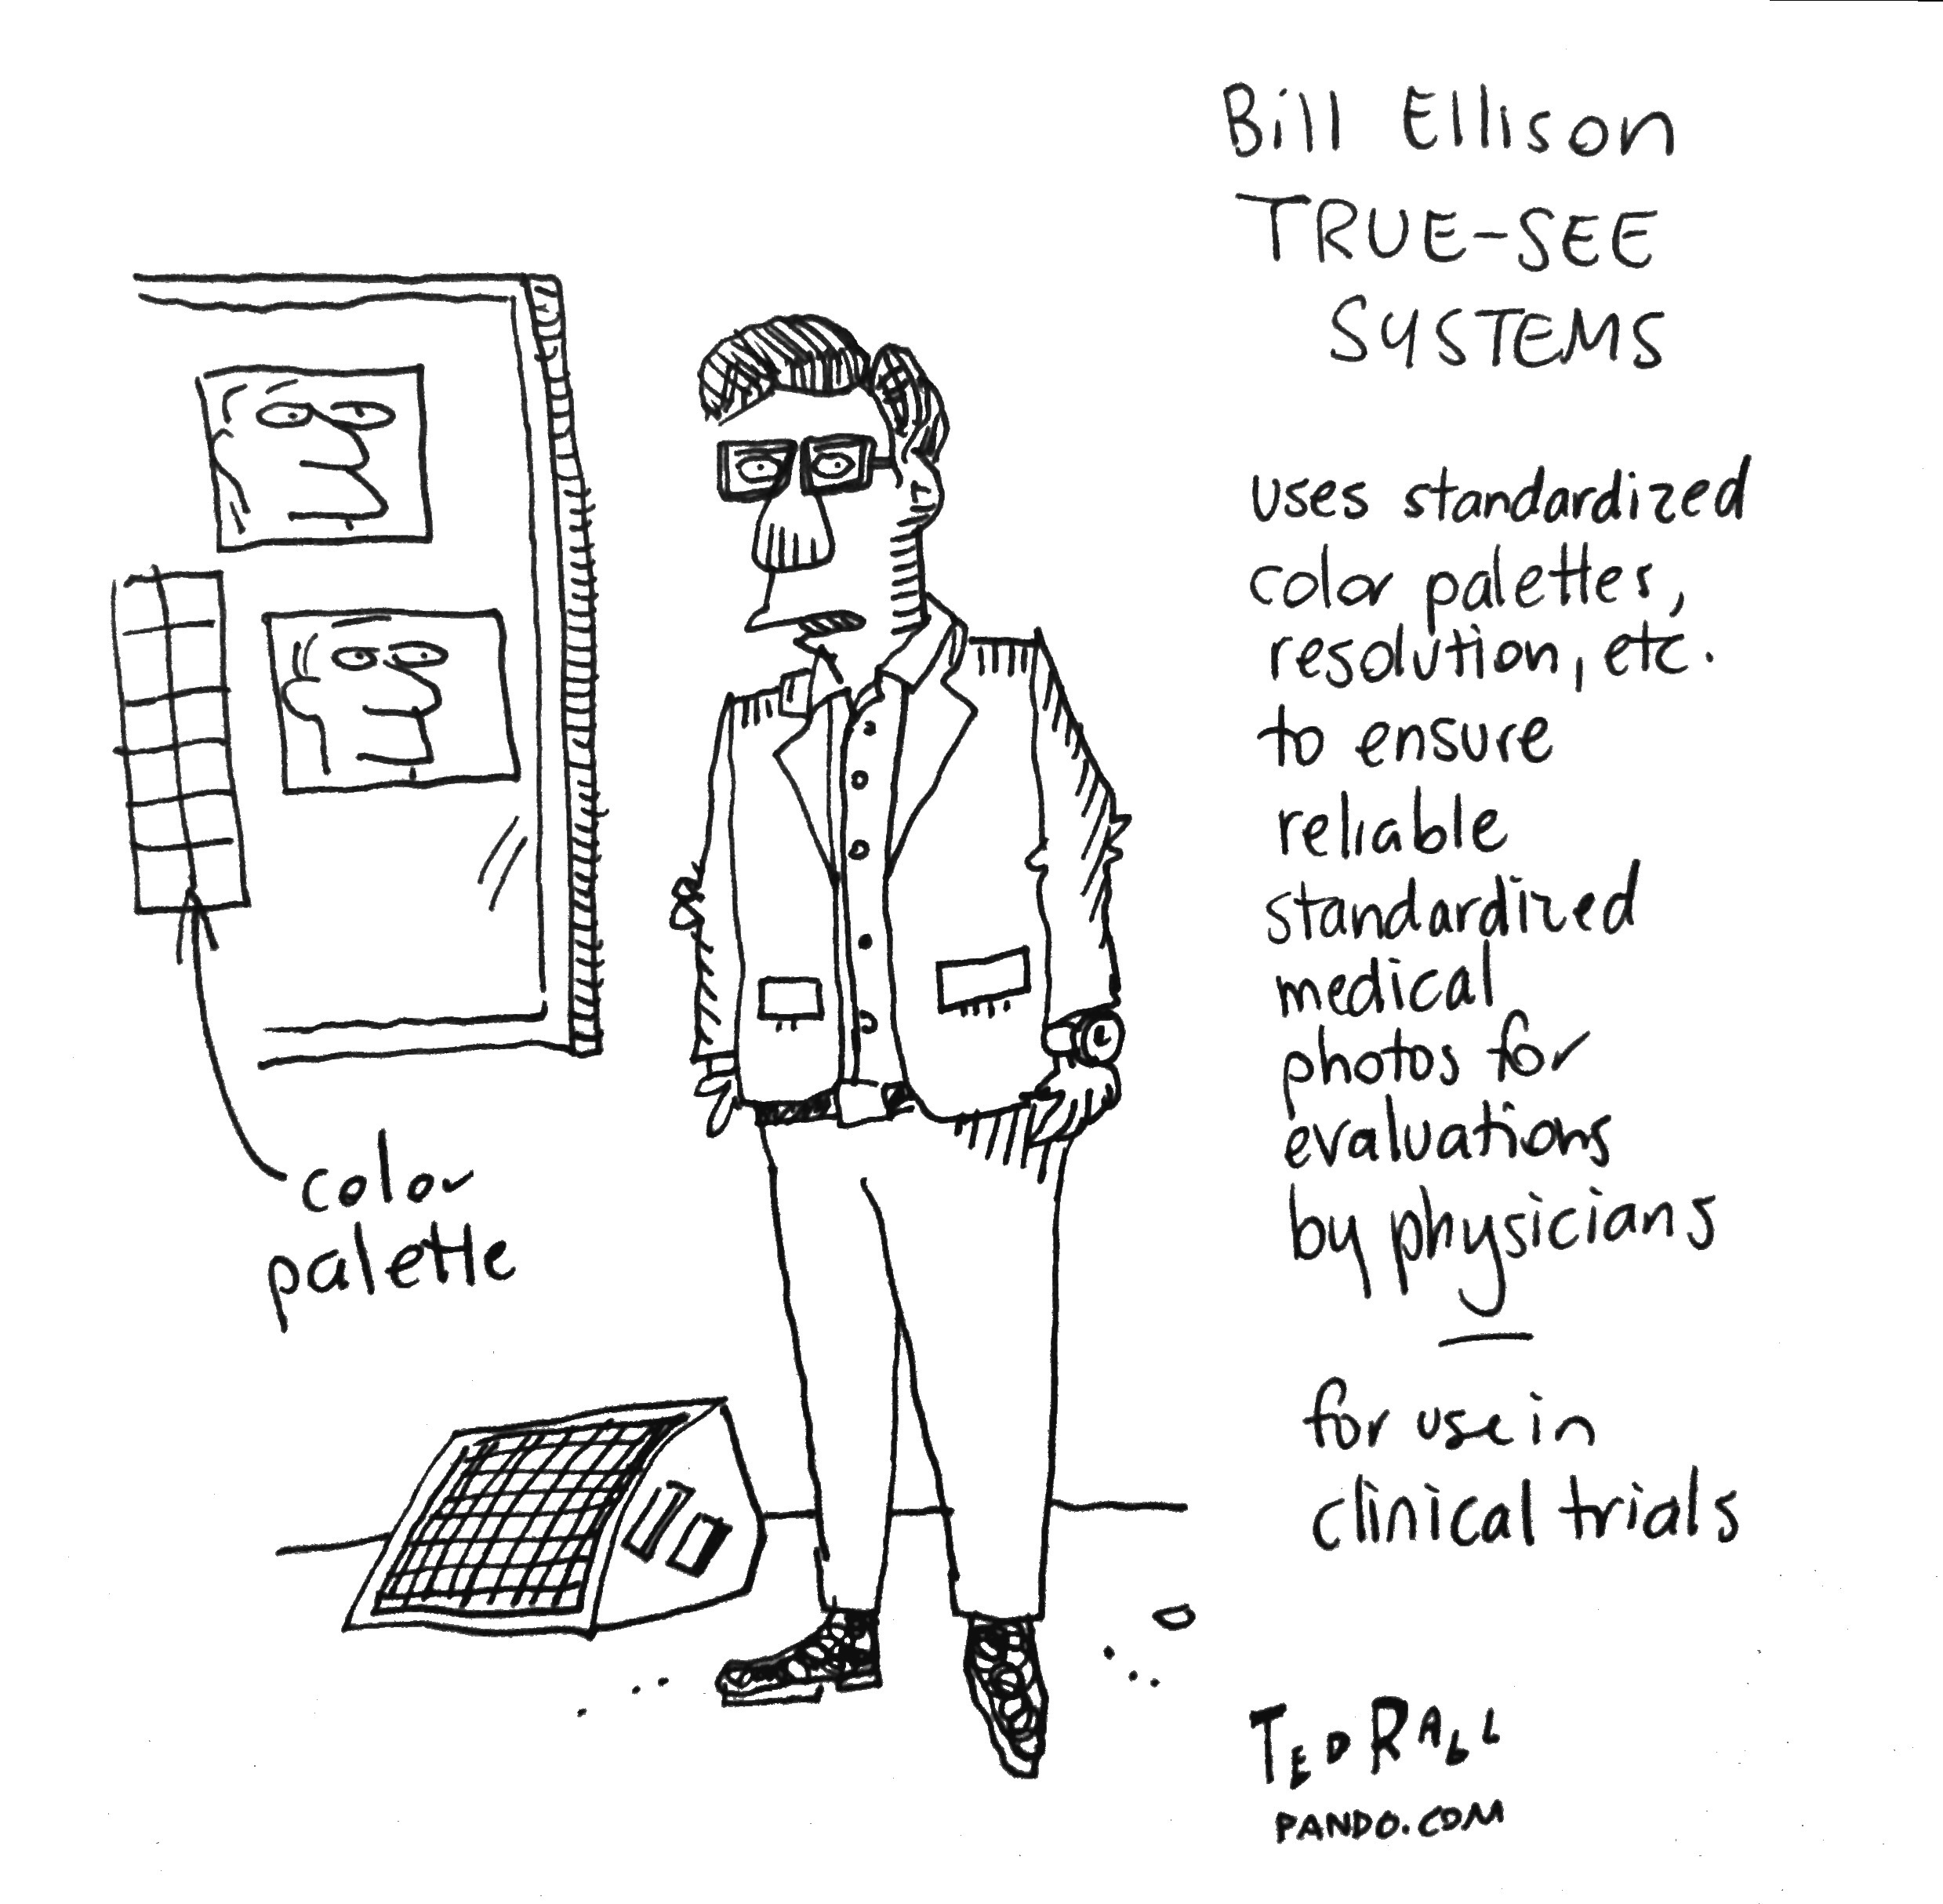 Bill Ellison True-See Systems